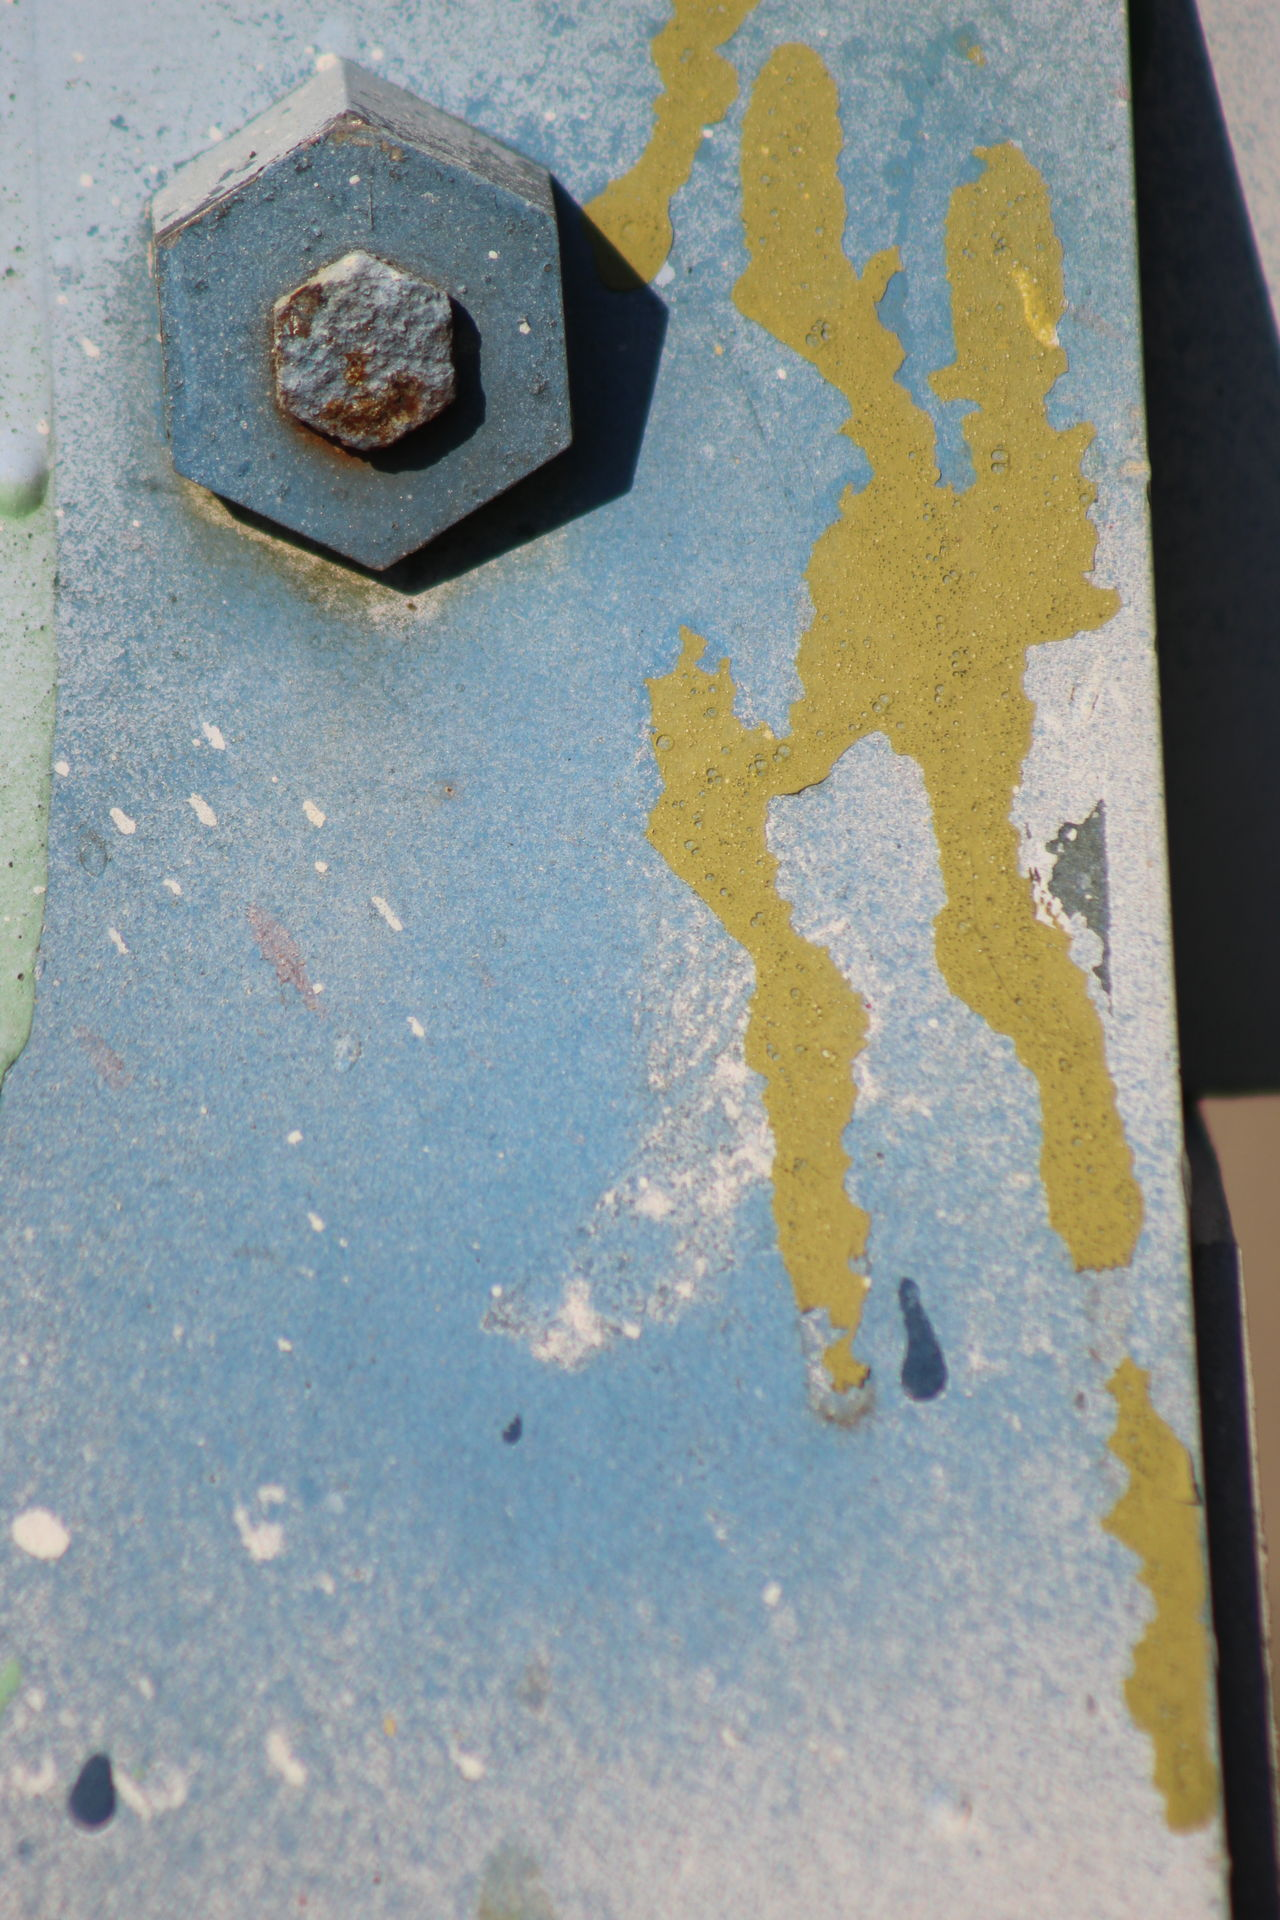 paint and nut drip Close Up Paint Dri Close Up Paint Drip Yellow Close Up Photography Close Up Saw Horse Close-up Nature Close-up Yellow Paint Dri Communication Creativity Drips  High Angle View Industrial Photography No People Outdoors Overhead View Paint Decay Paint Drip Paint Drip High Five Paint Streak Paiperson Drip Road Street Symbol Textured  Yellow Yellow Streak